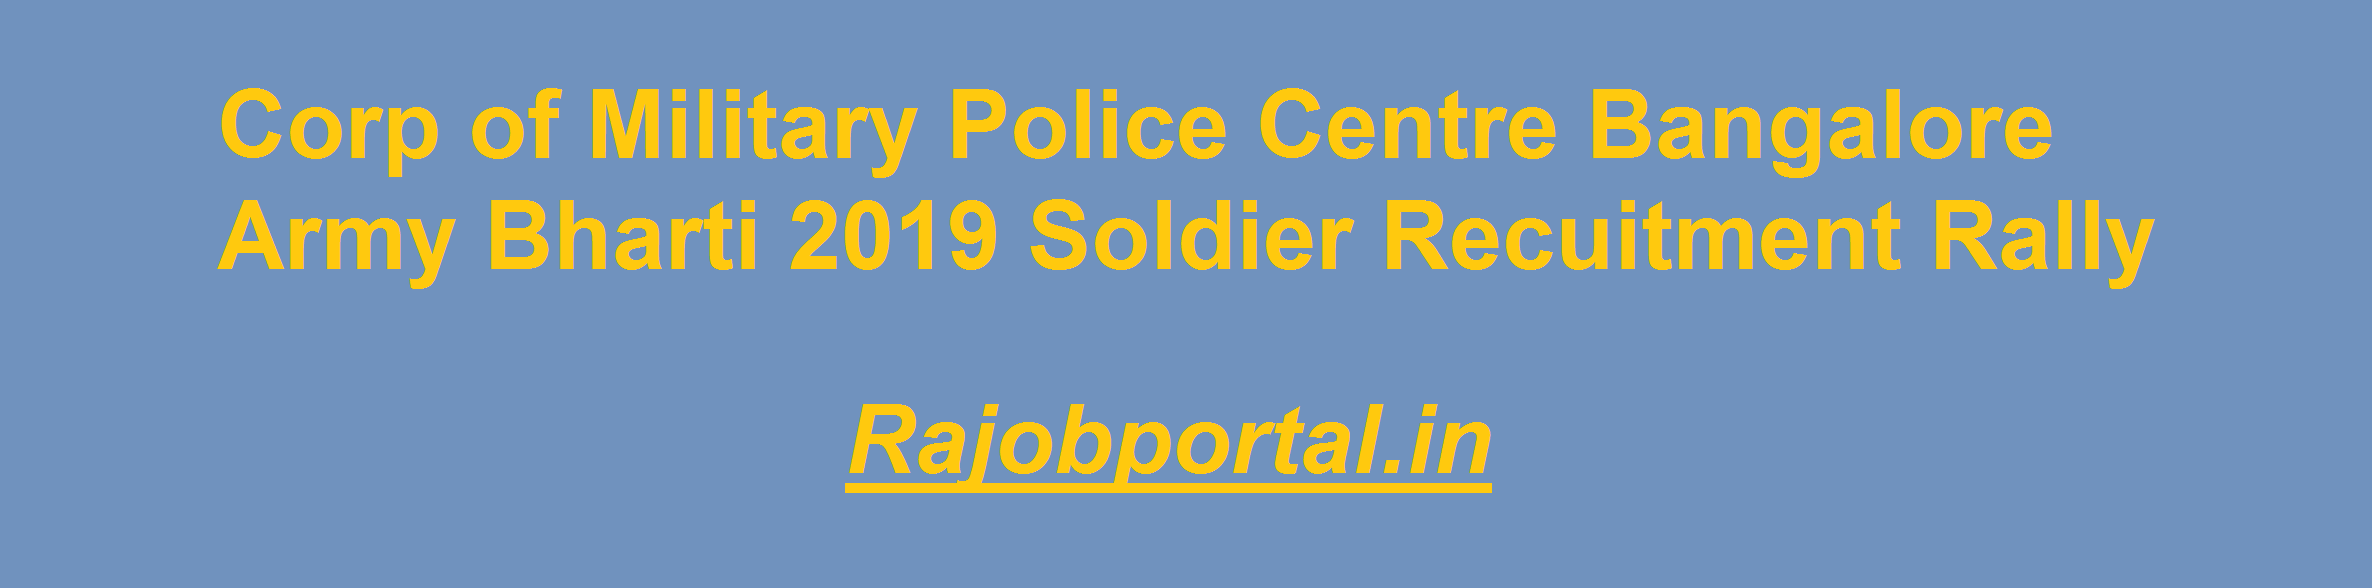 Corp of Military Police Centre Bangalore Army Bharti Result